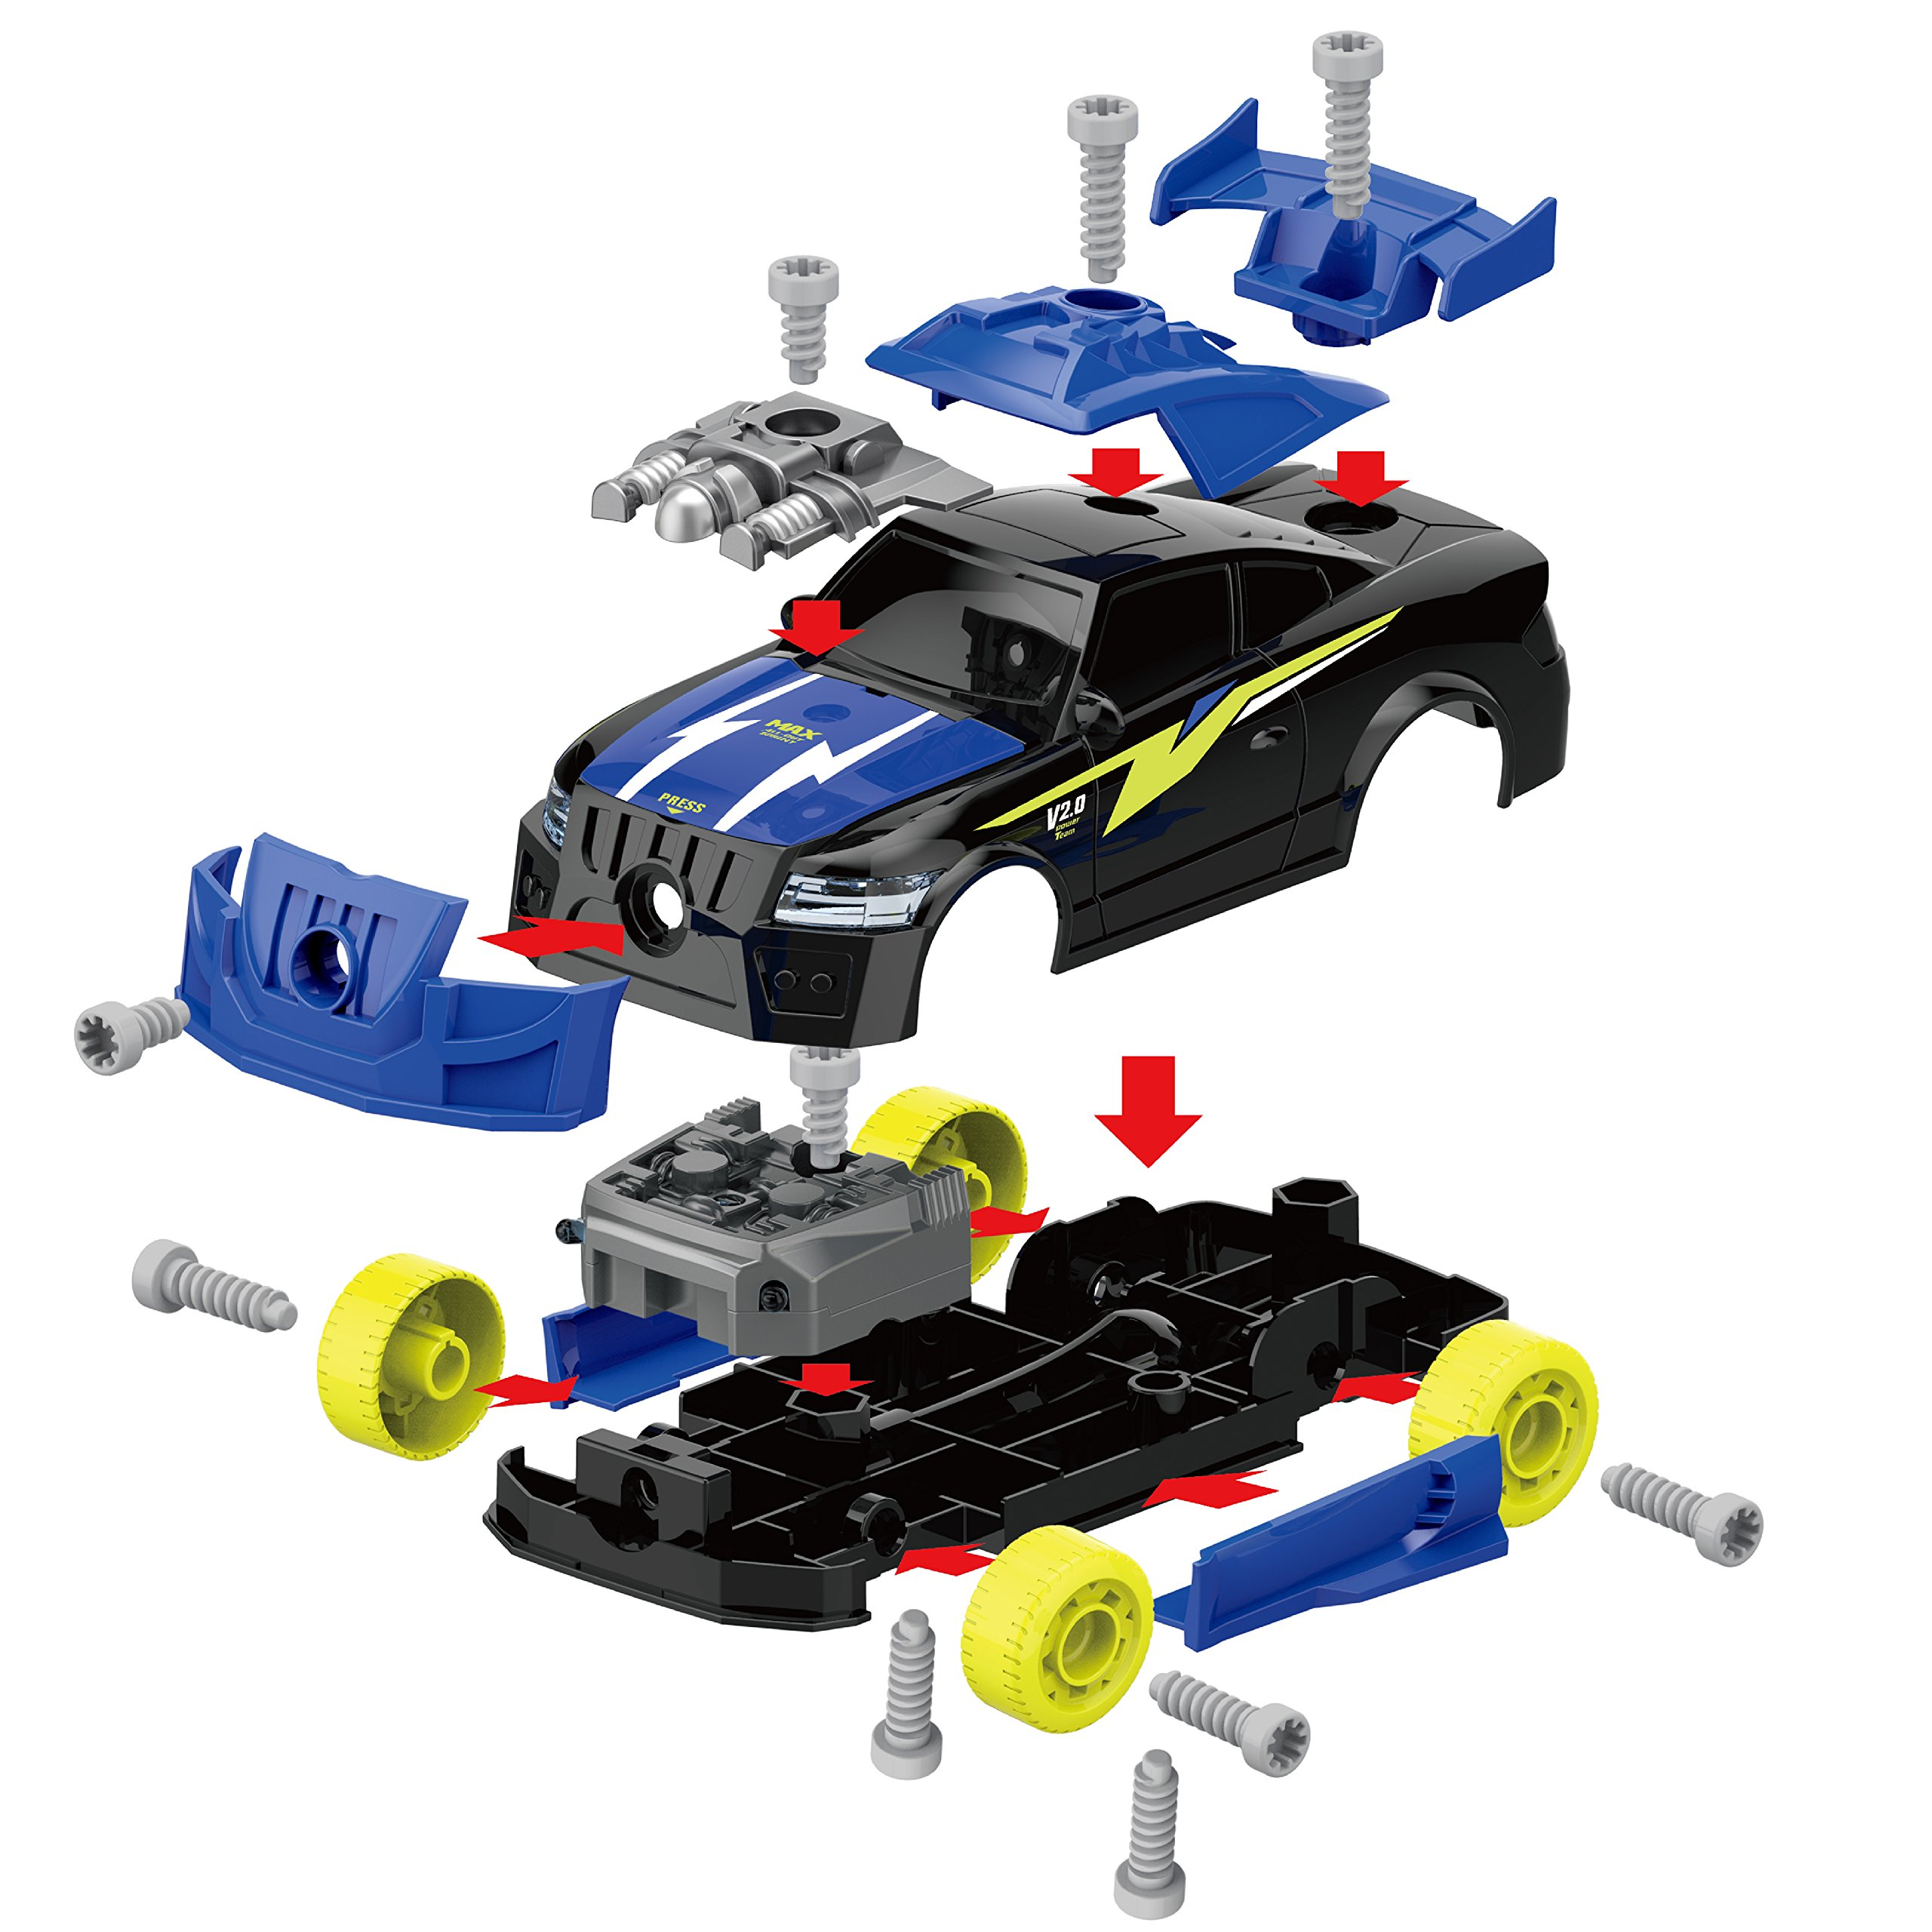 Maxxrace Take Apart Racing Car, STEM Toys 26 Pieces Assembly Car Toys with Drill Tool, Lights and Sounds, Gifts for Kids Aged 3+ by Maxxrace (Image #3)